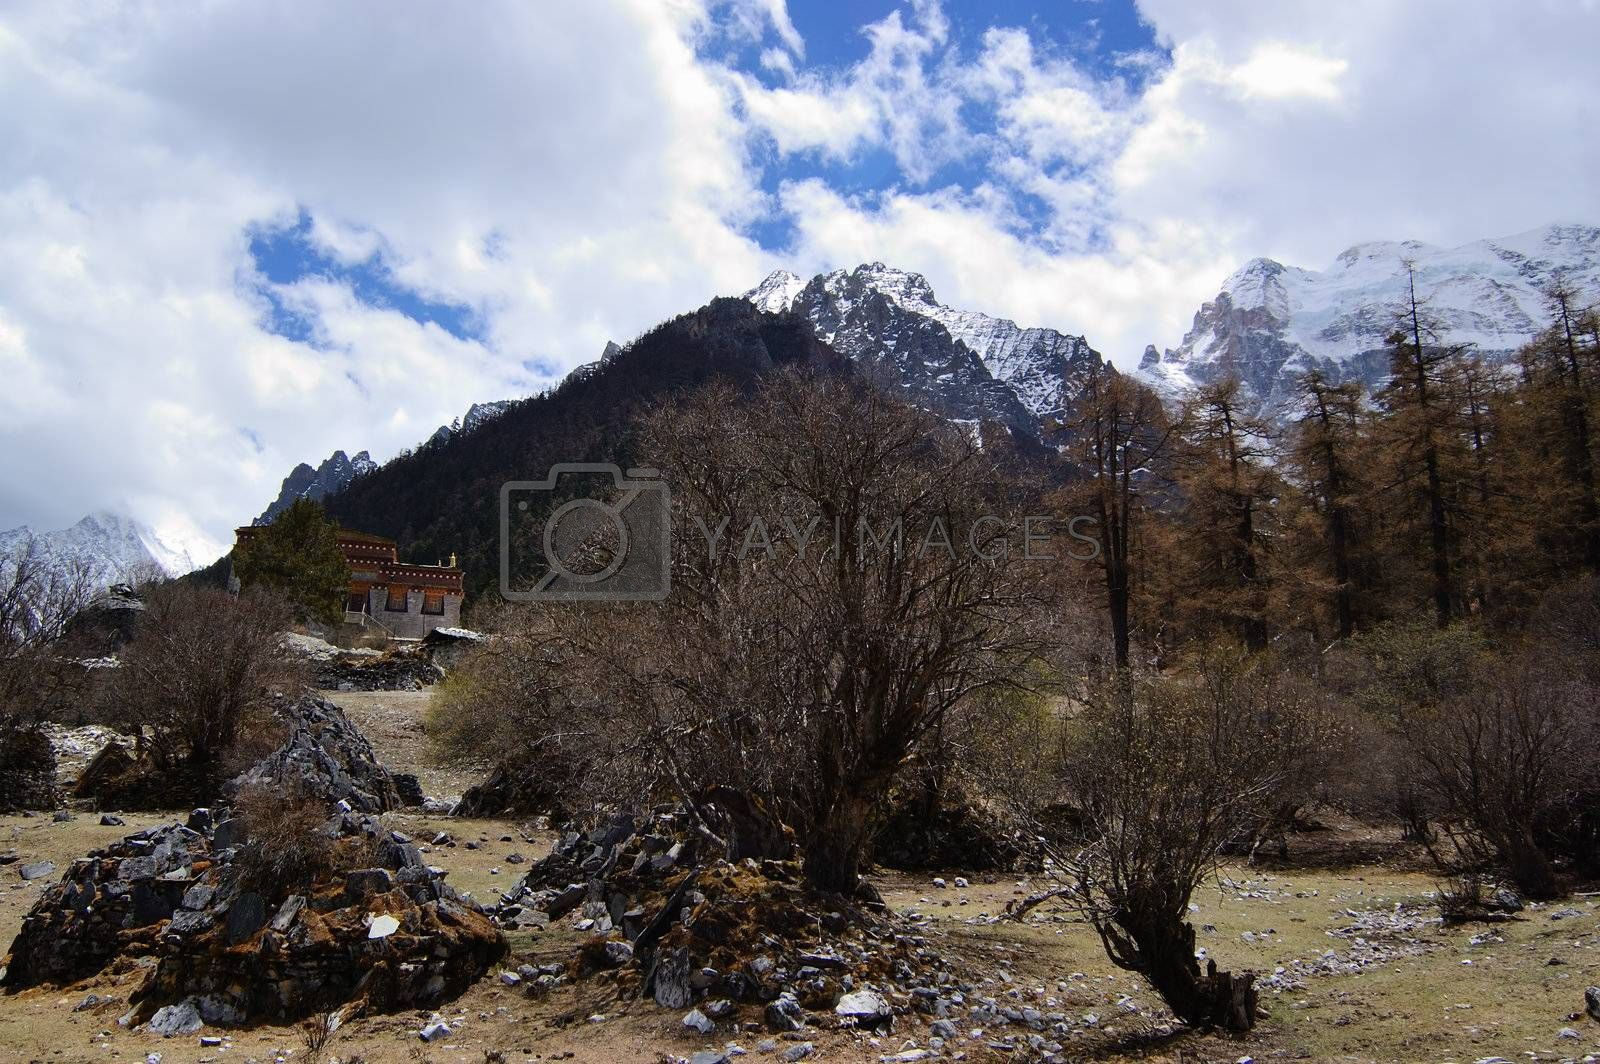 Tibetan mani stones  by snow mountain  in Daocheng,Sichuan Province, China